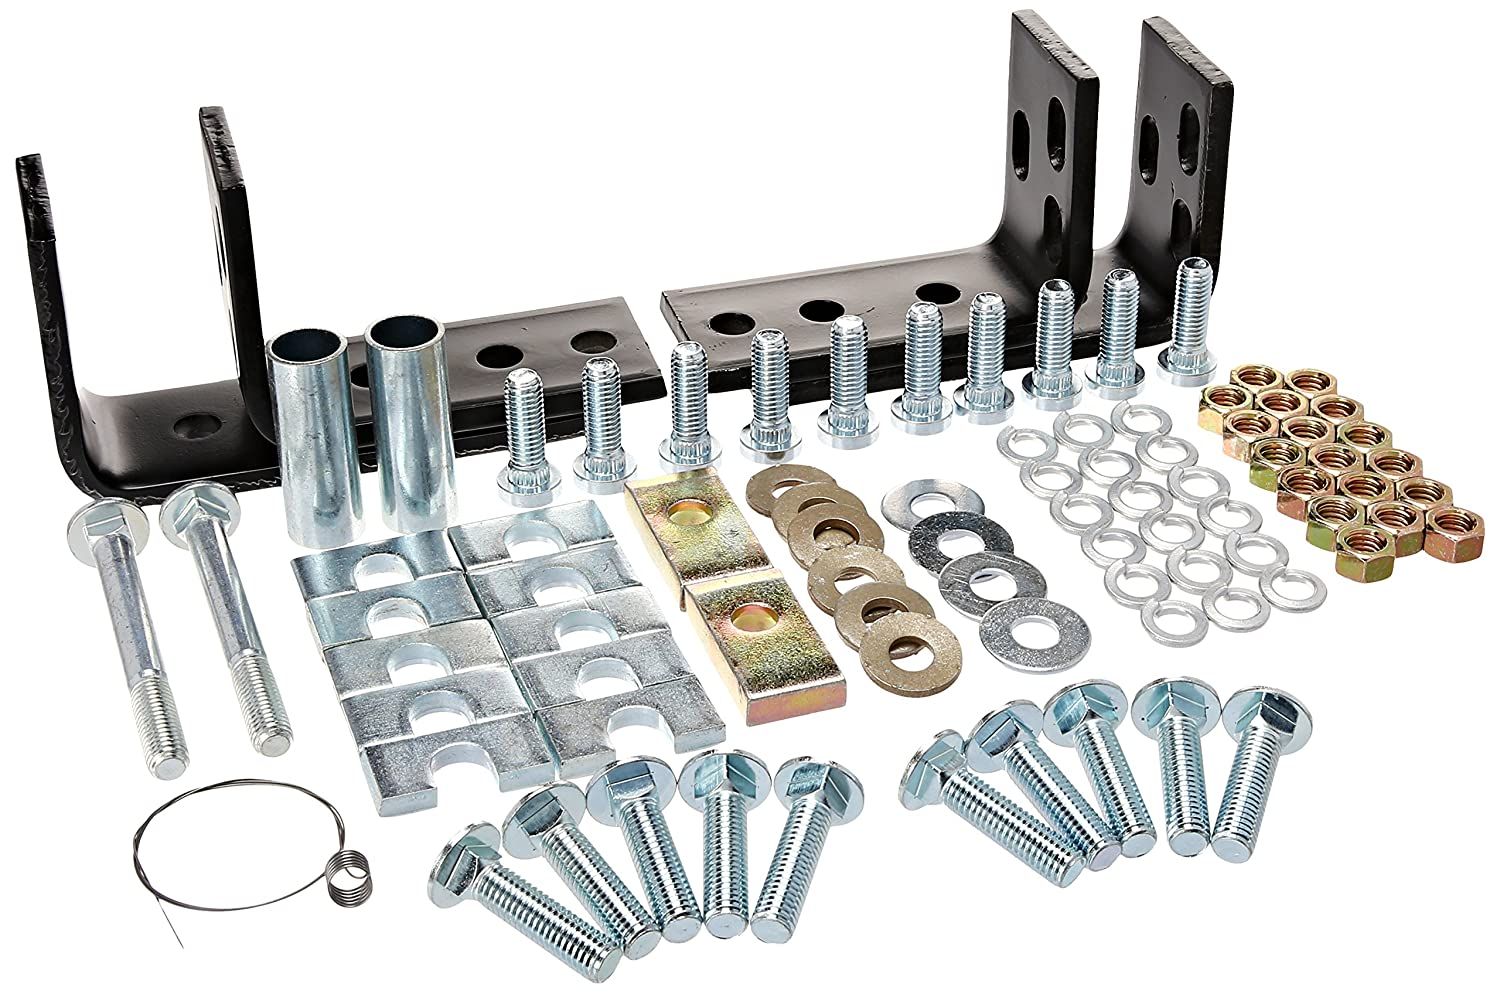 Reese 0225.0018 30439 Fifth Wheel Installation Kit for 30035 and 58058 (10-Bolt Design)